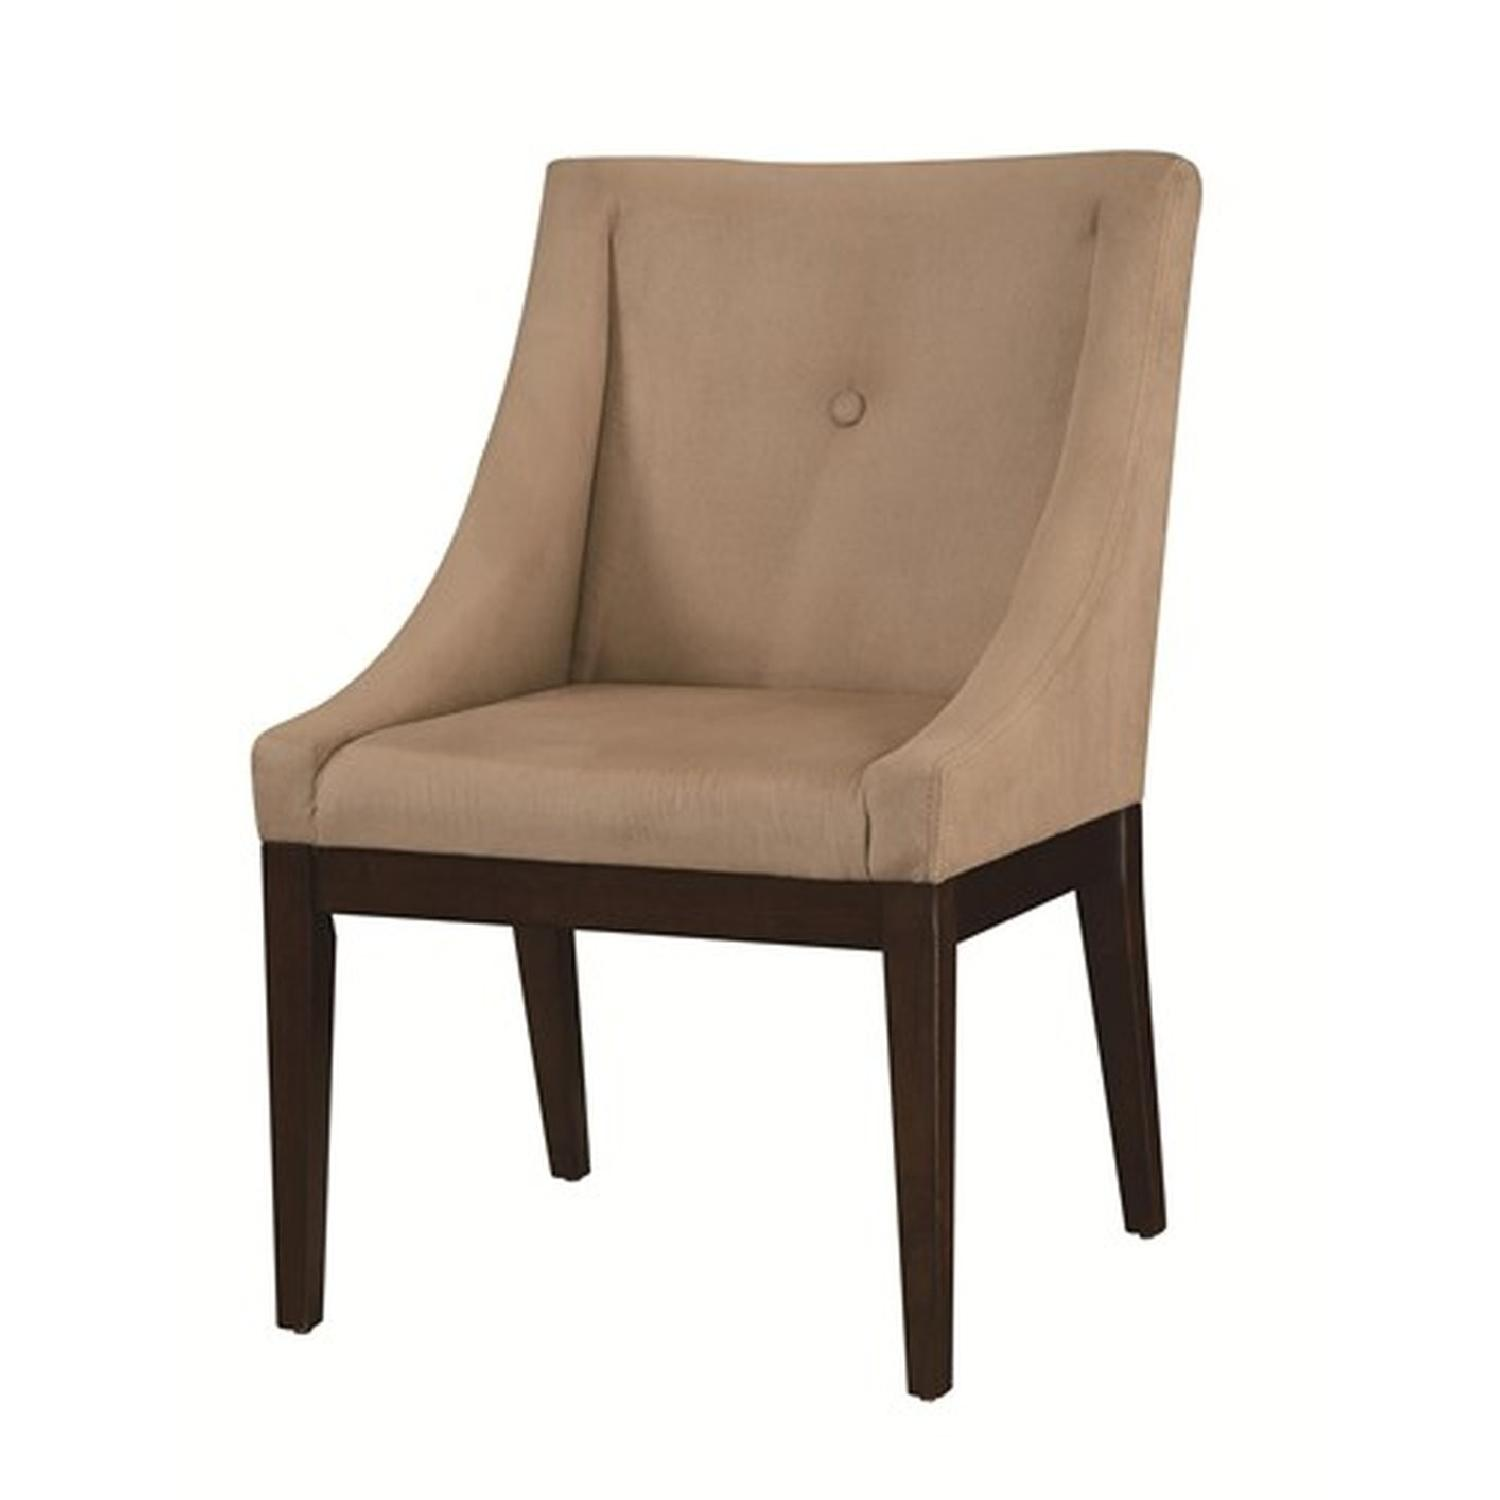 Soft Microvelvet Fabric Accent Chair in Taupe Color - image-0